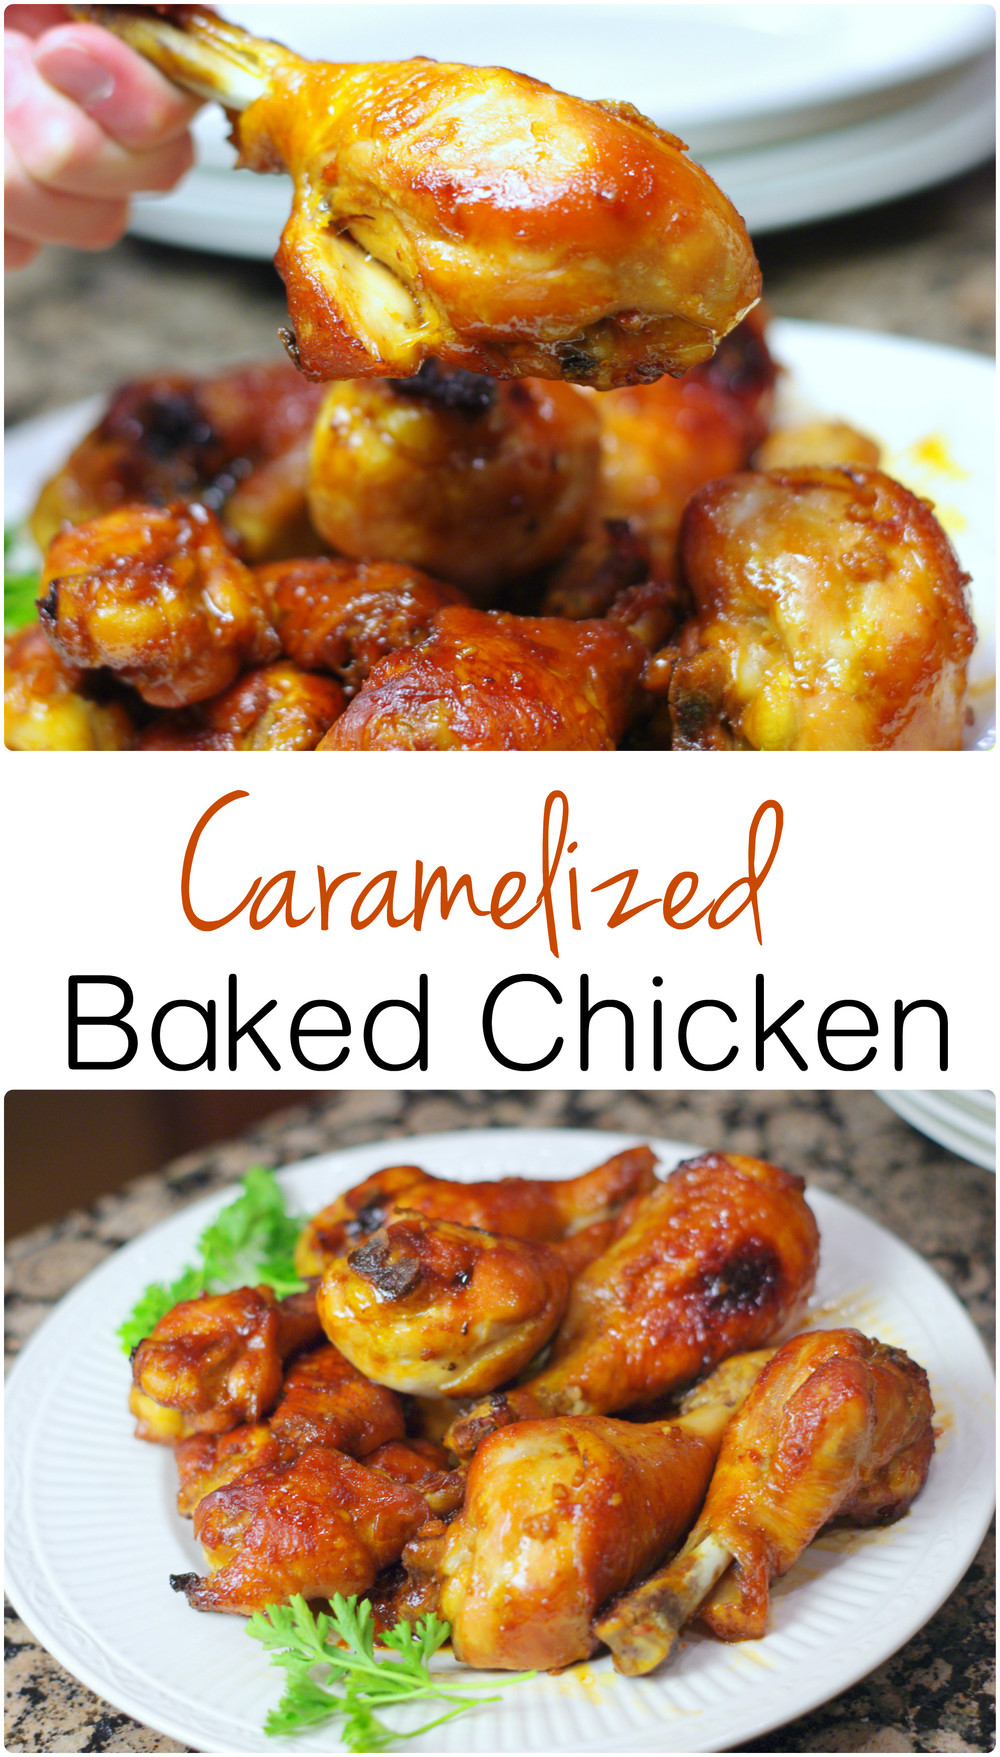 Caramelized Baked Chicken | Home & Plate | www.homeandplate.com | These chicken wings and legs have a sweet and sticky flavor that is just delicious.